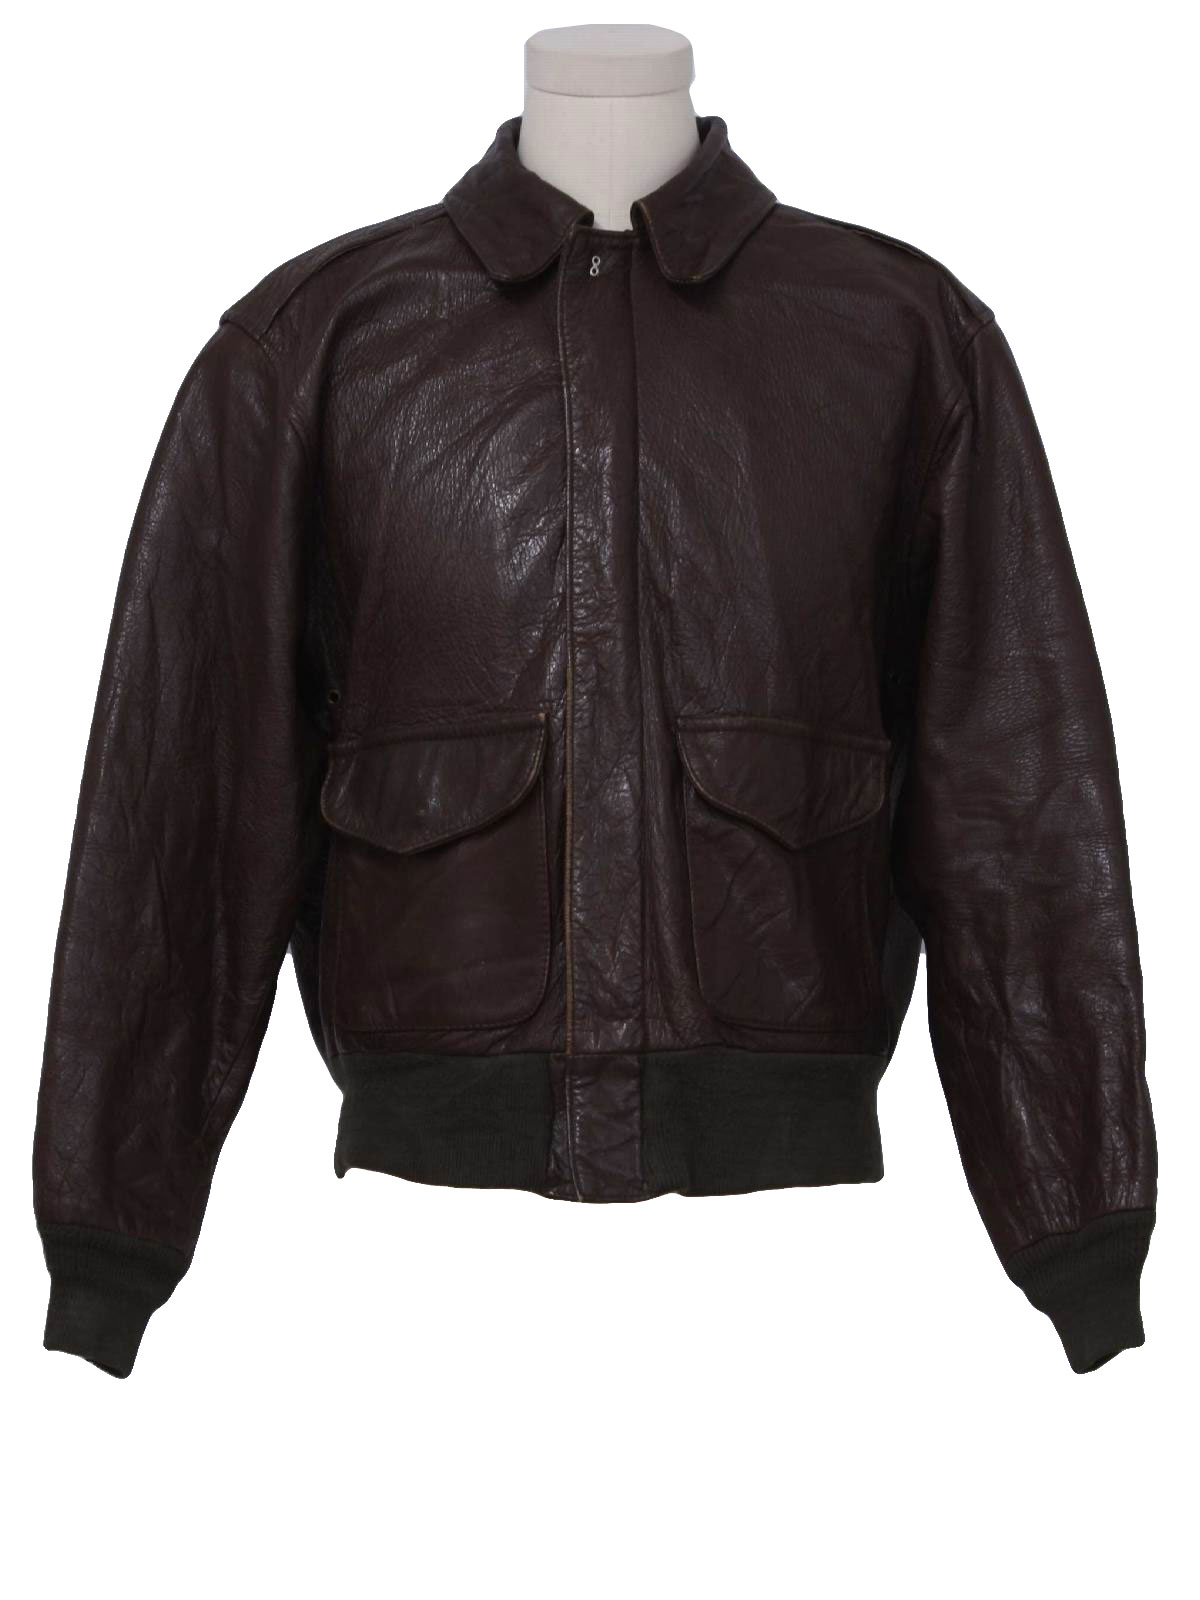 mens leather bomber jacket 50s style made in 70s avirex unlimited mens